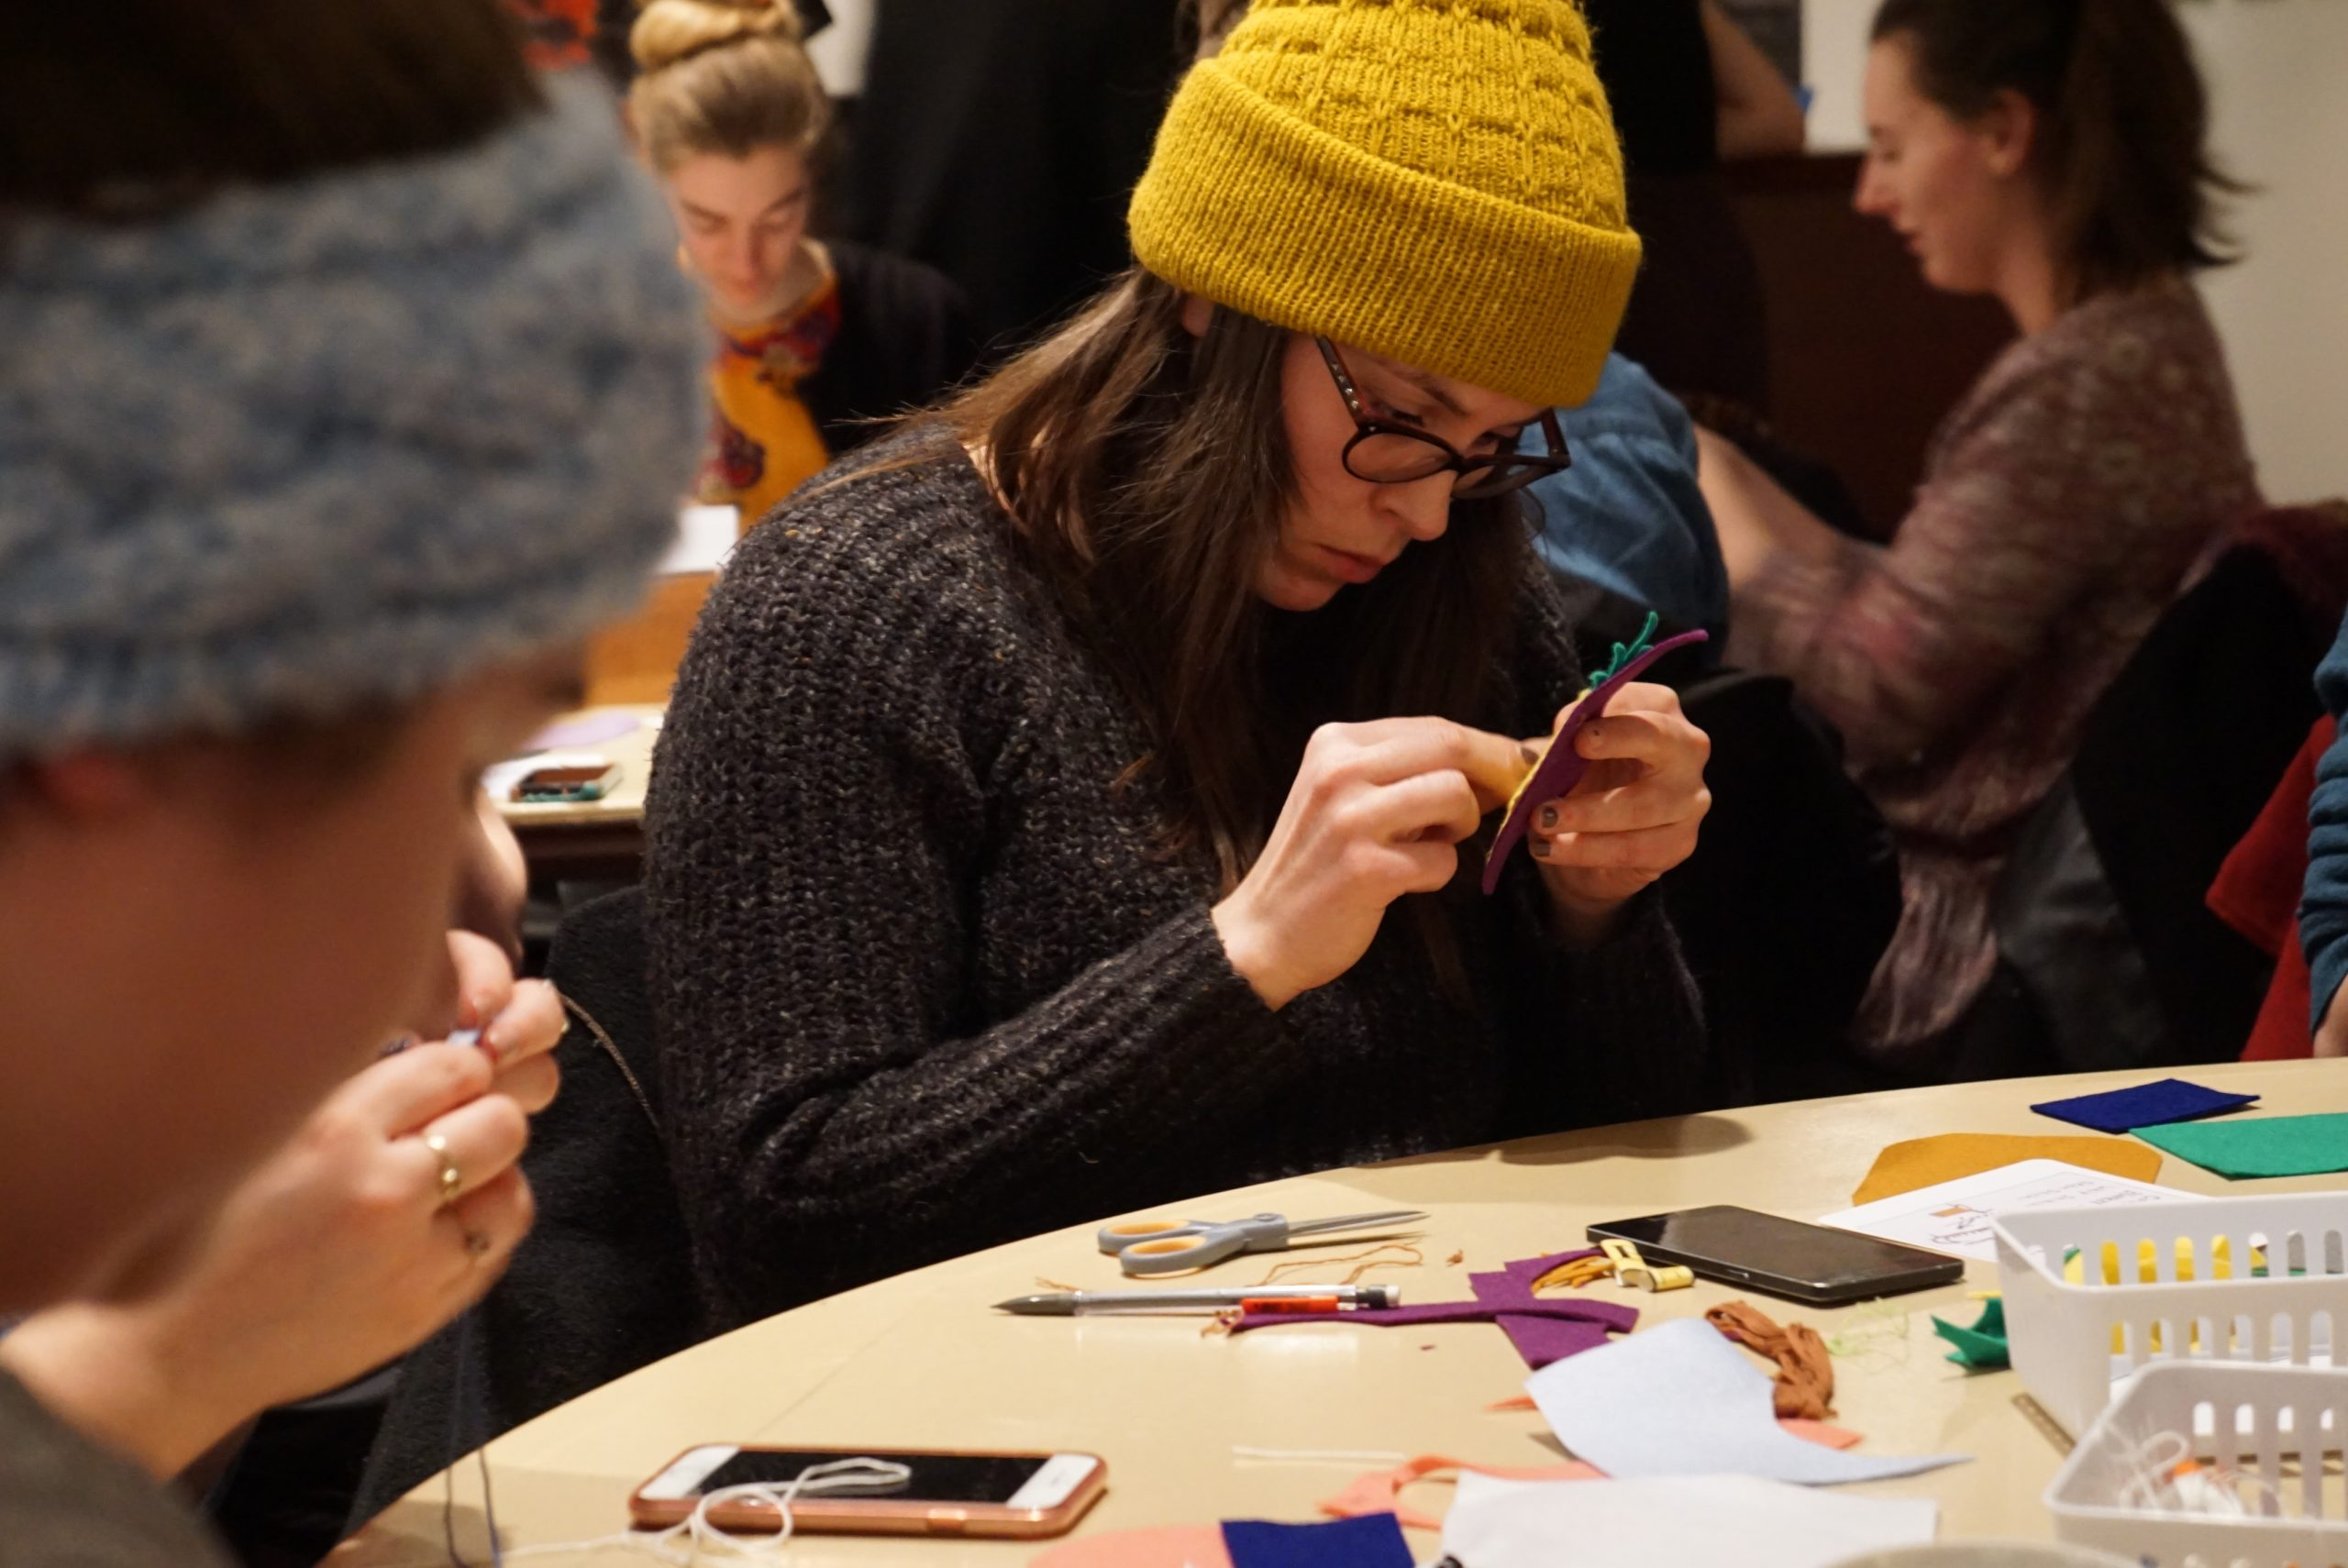 An adult sits working at a table. They are focused insanely on the sewing project in their hands.